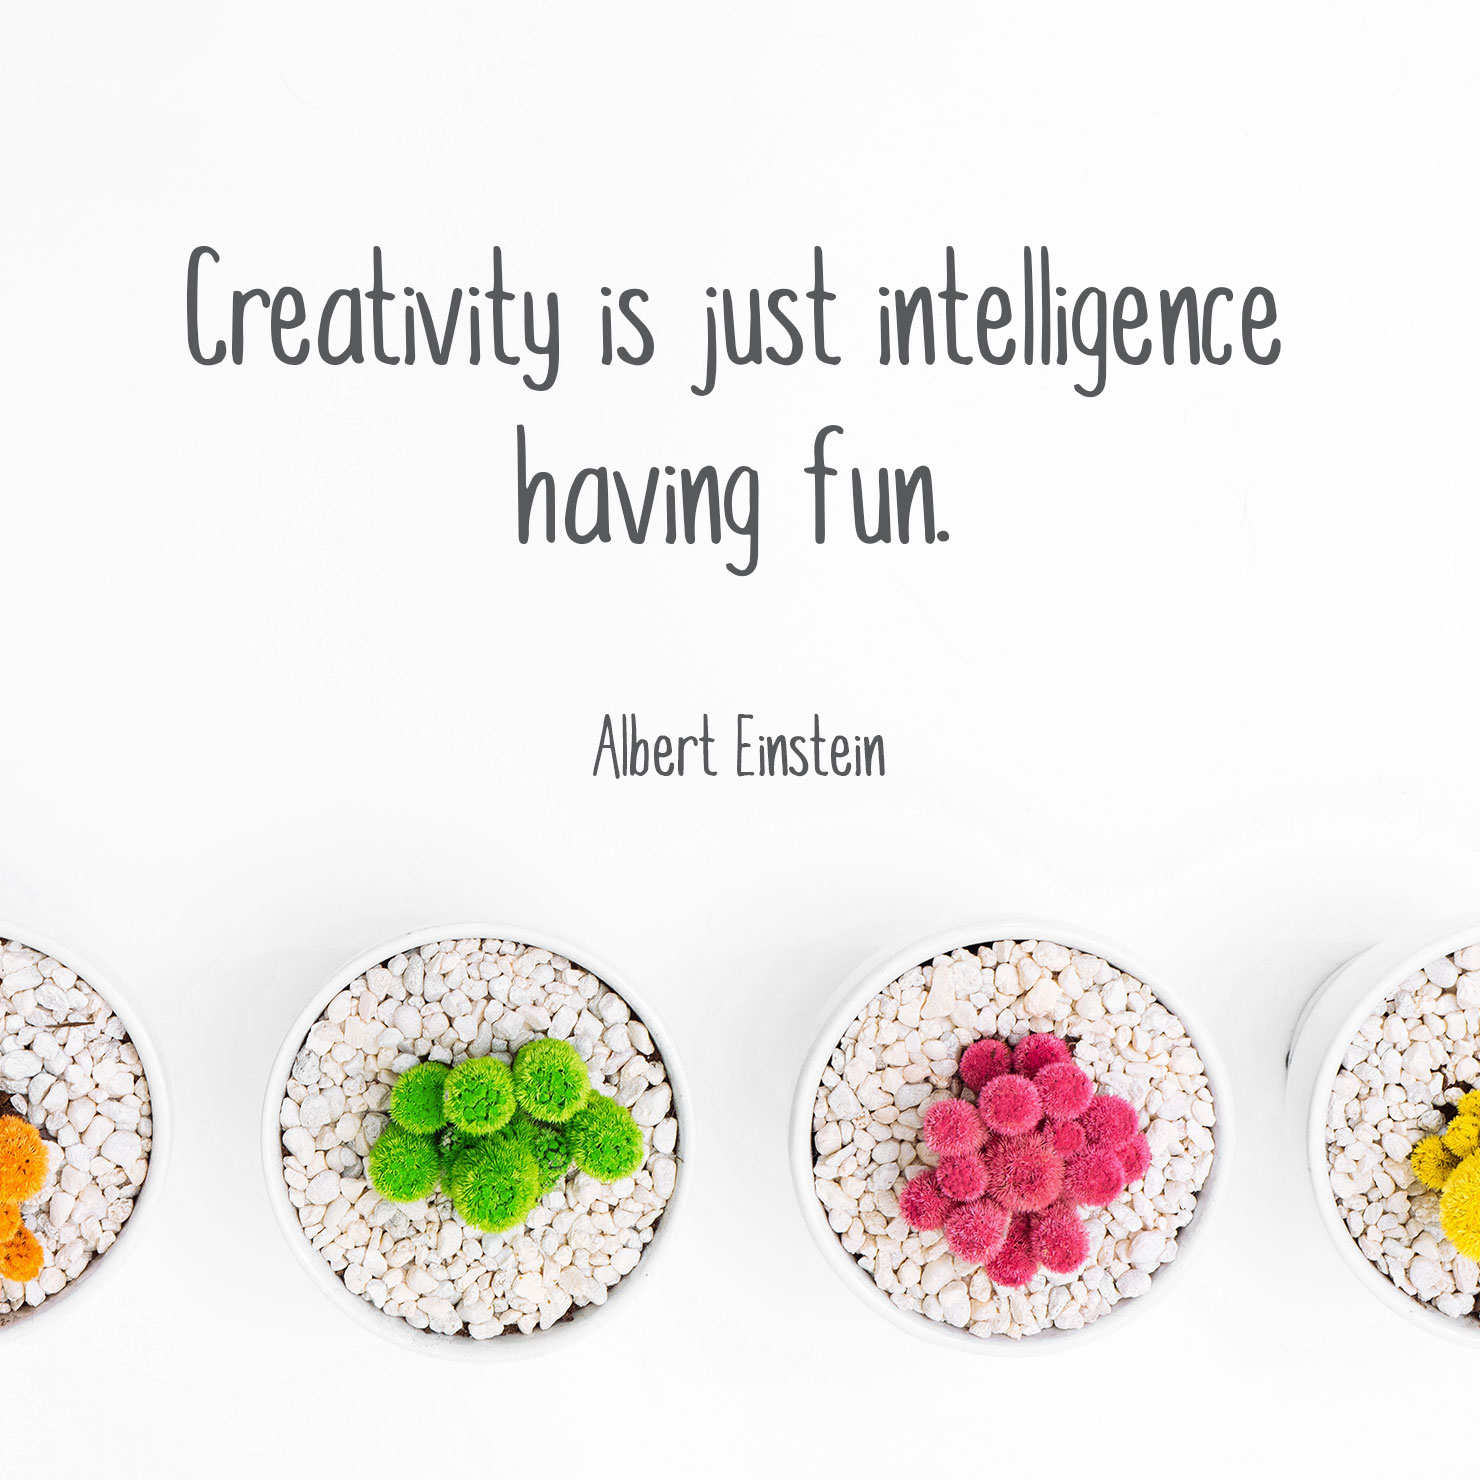 short graduation quote: creativity is just intelligence having fun - Albert Einstein